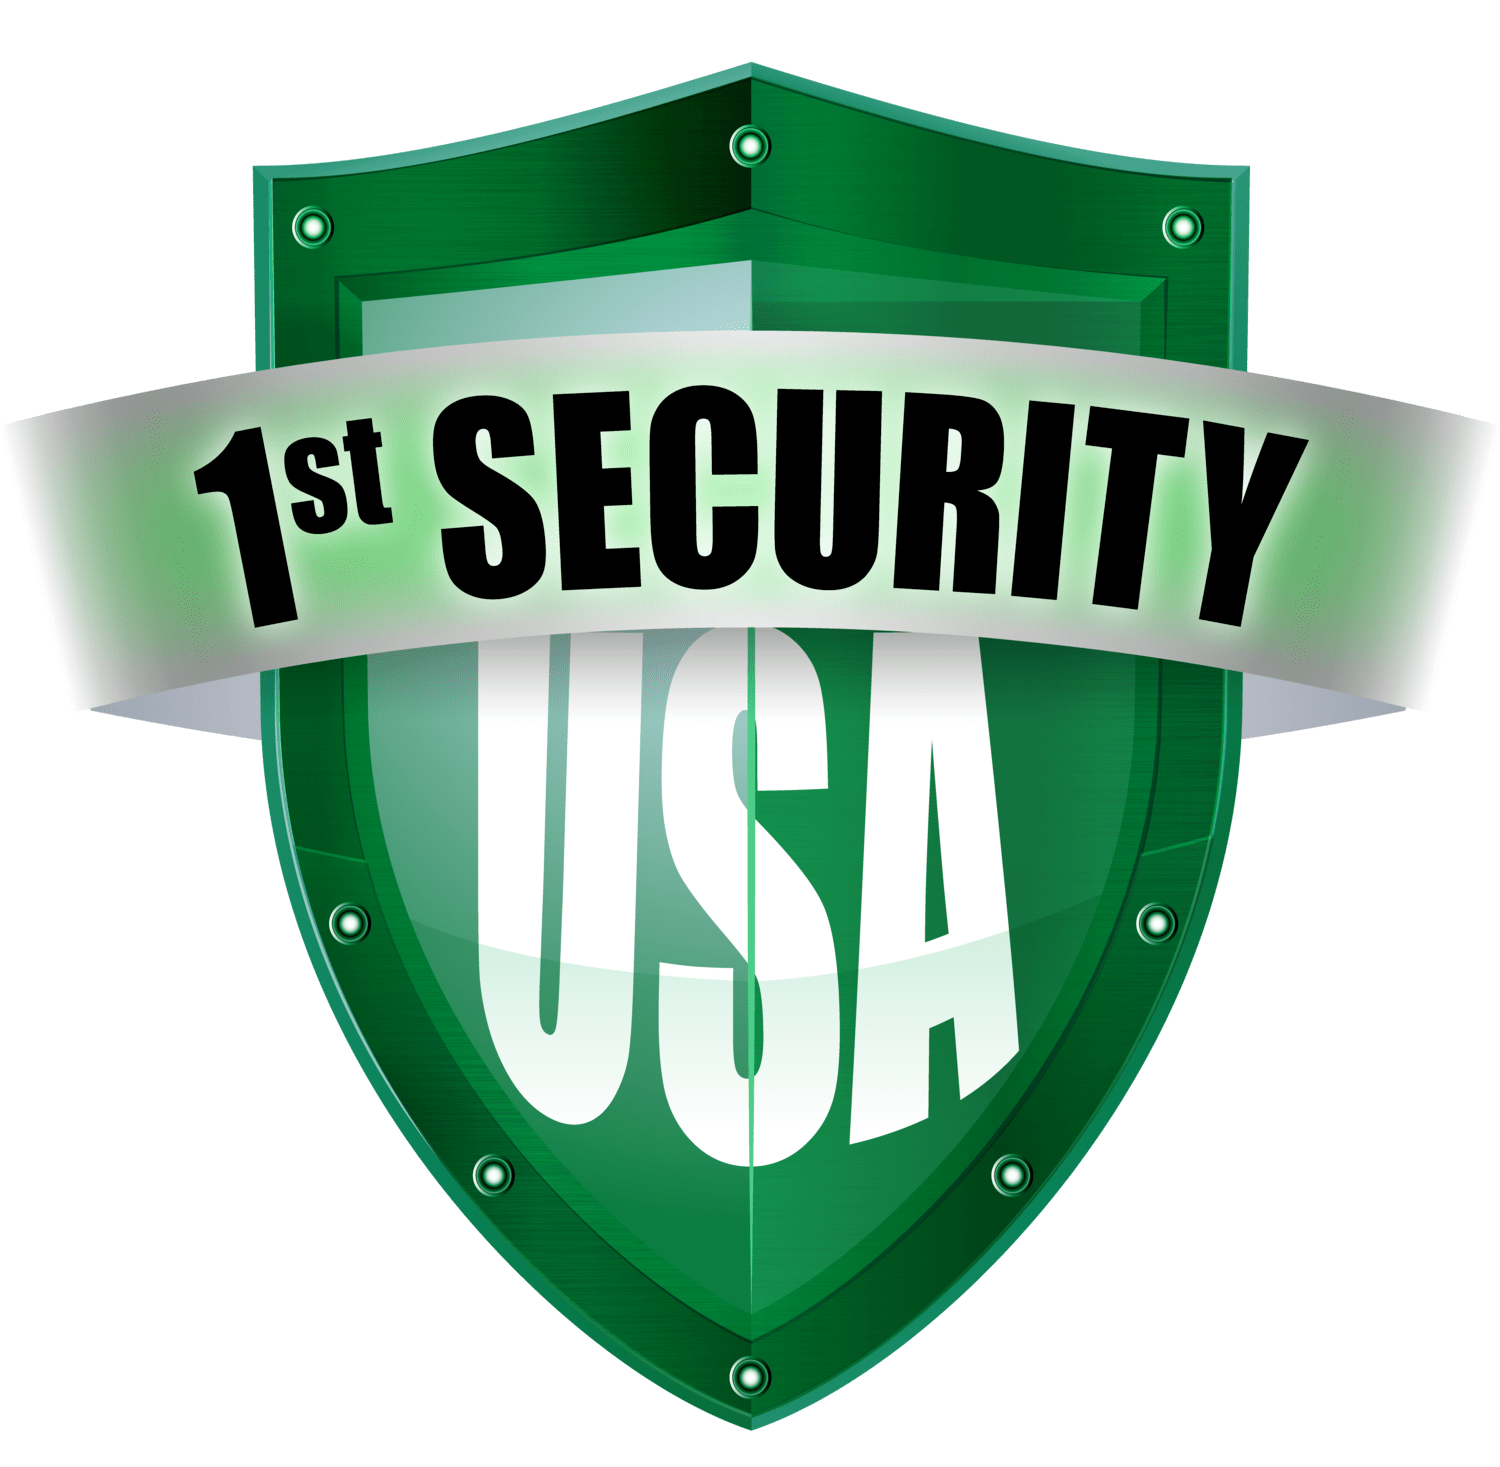 1st Security USA Image